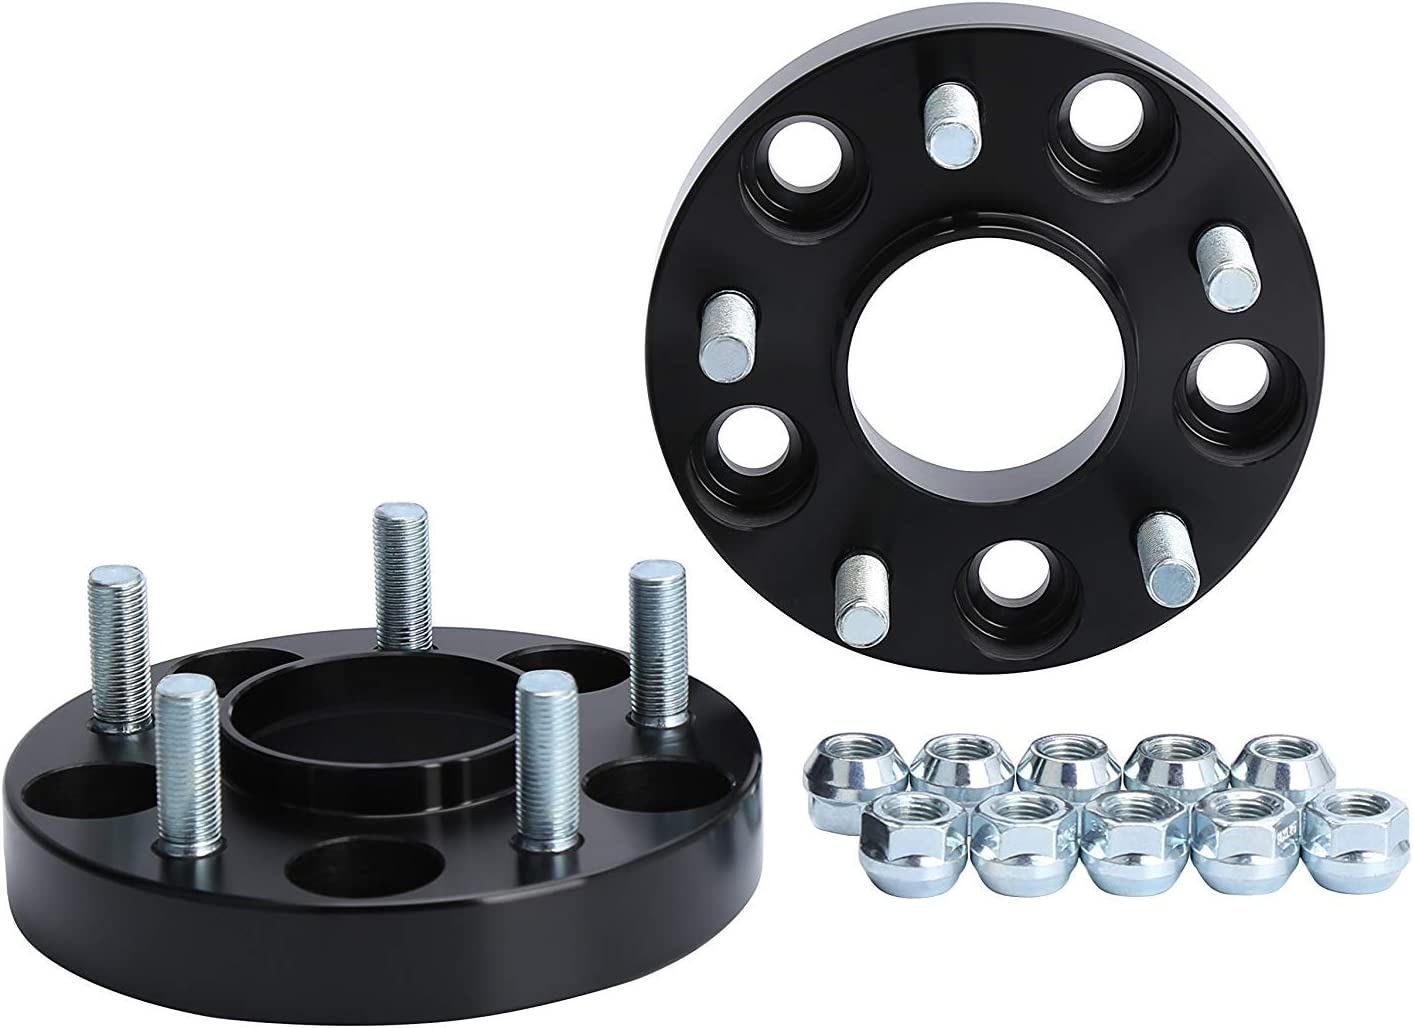 "KSP 5X114.3mm Wheel Spacers, Forged 2Pcs 15mm Thread Pitch 12x1.25 Hub Bore 66.1mm 5 Lug Hub Centric 3/5"" Wheel Adapters for 350Z 370Z G35 G37, 2 Years Warranty(Pack of 2)"